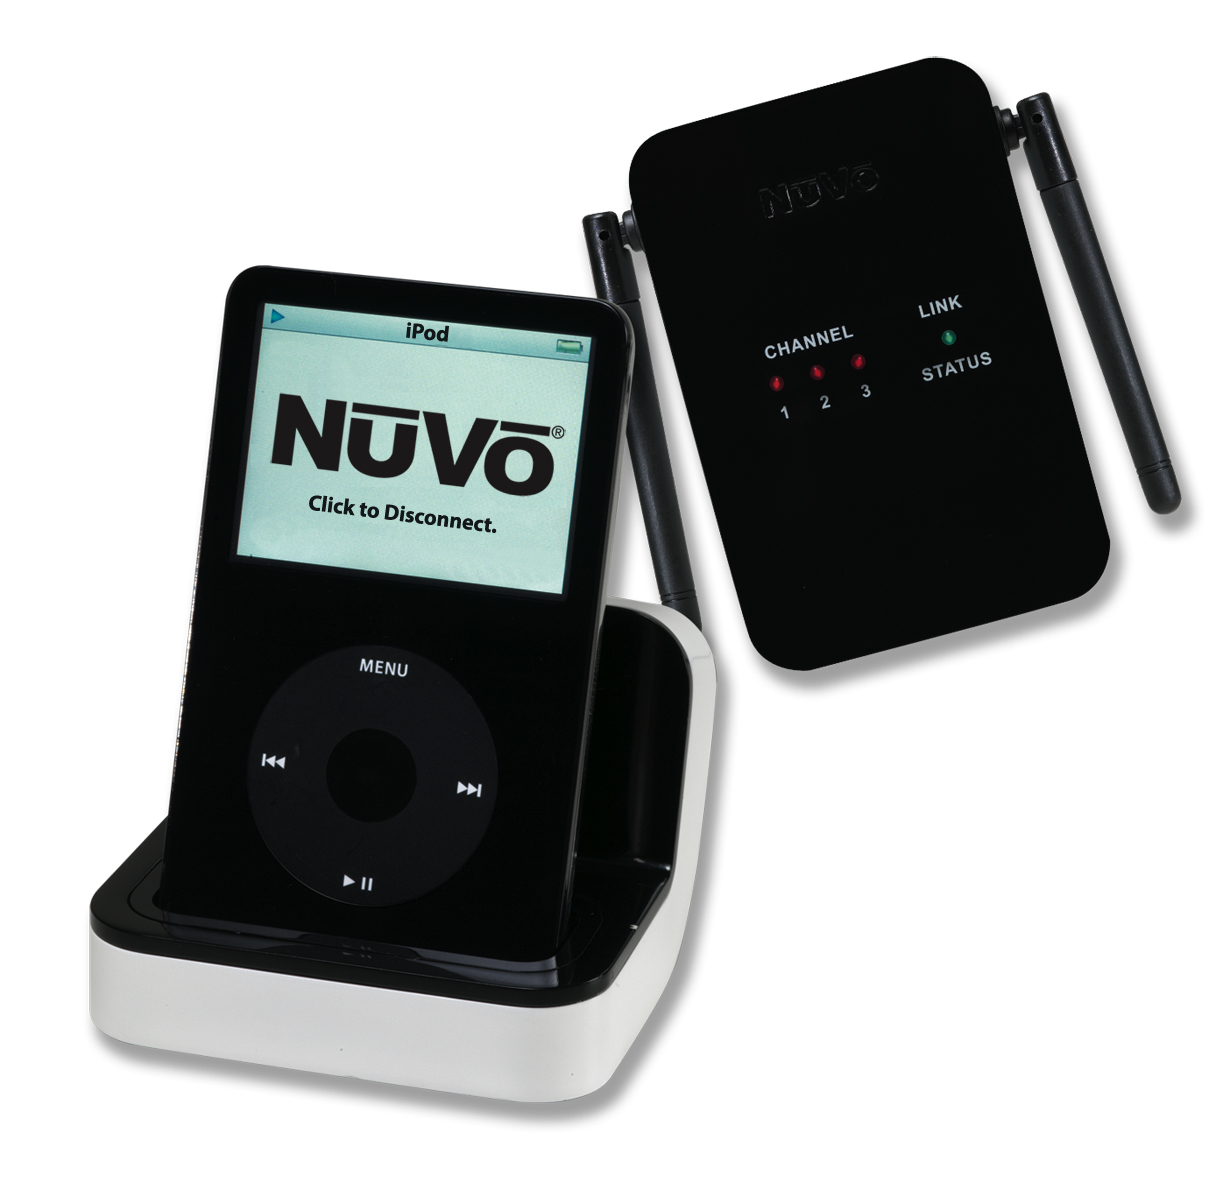 hight resolution of wireless nuvodock for ipod high resolution image 423 36 kb